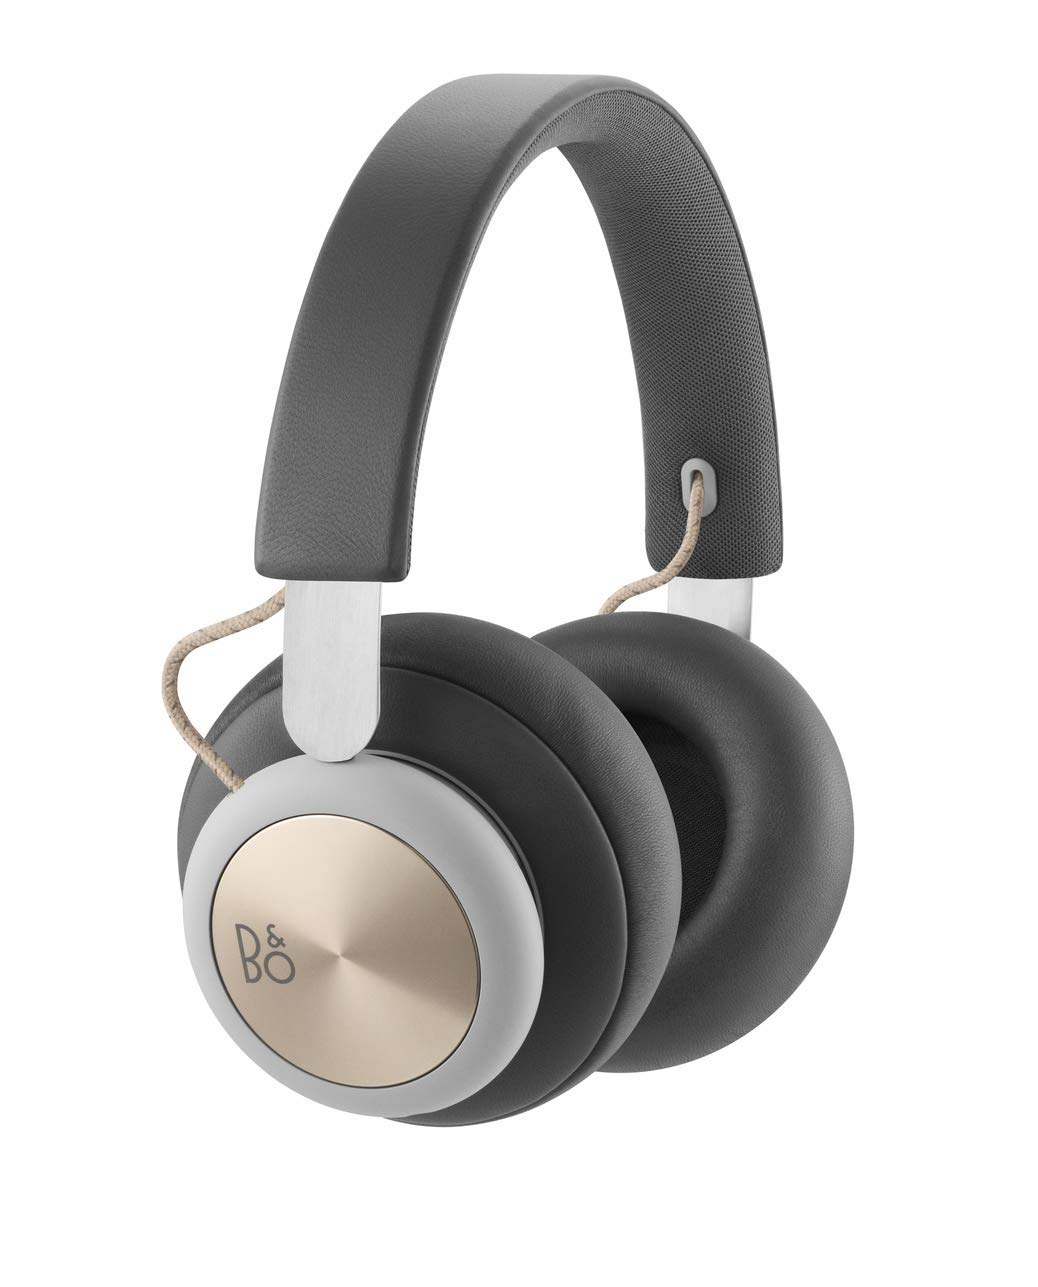 Bang & Olufsen Beoplay H4 Wireless Headphones - Charcoal grey